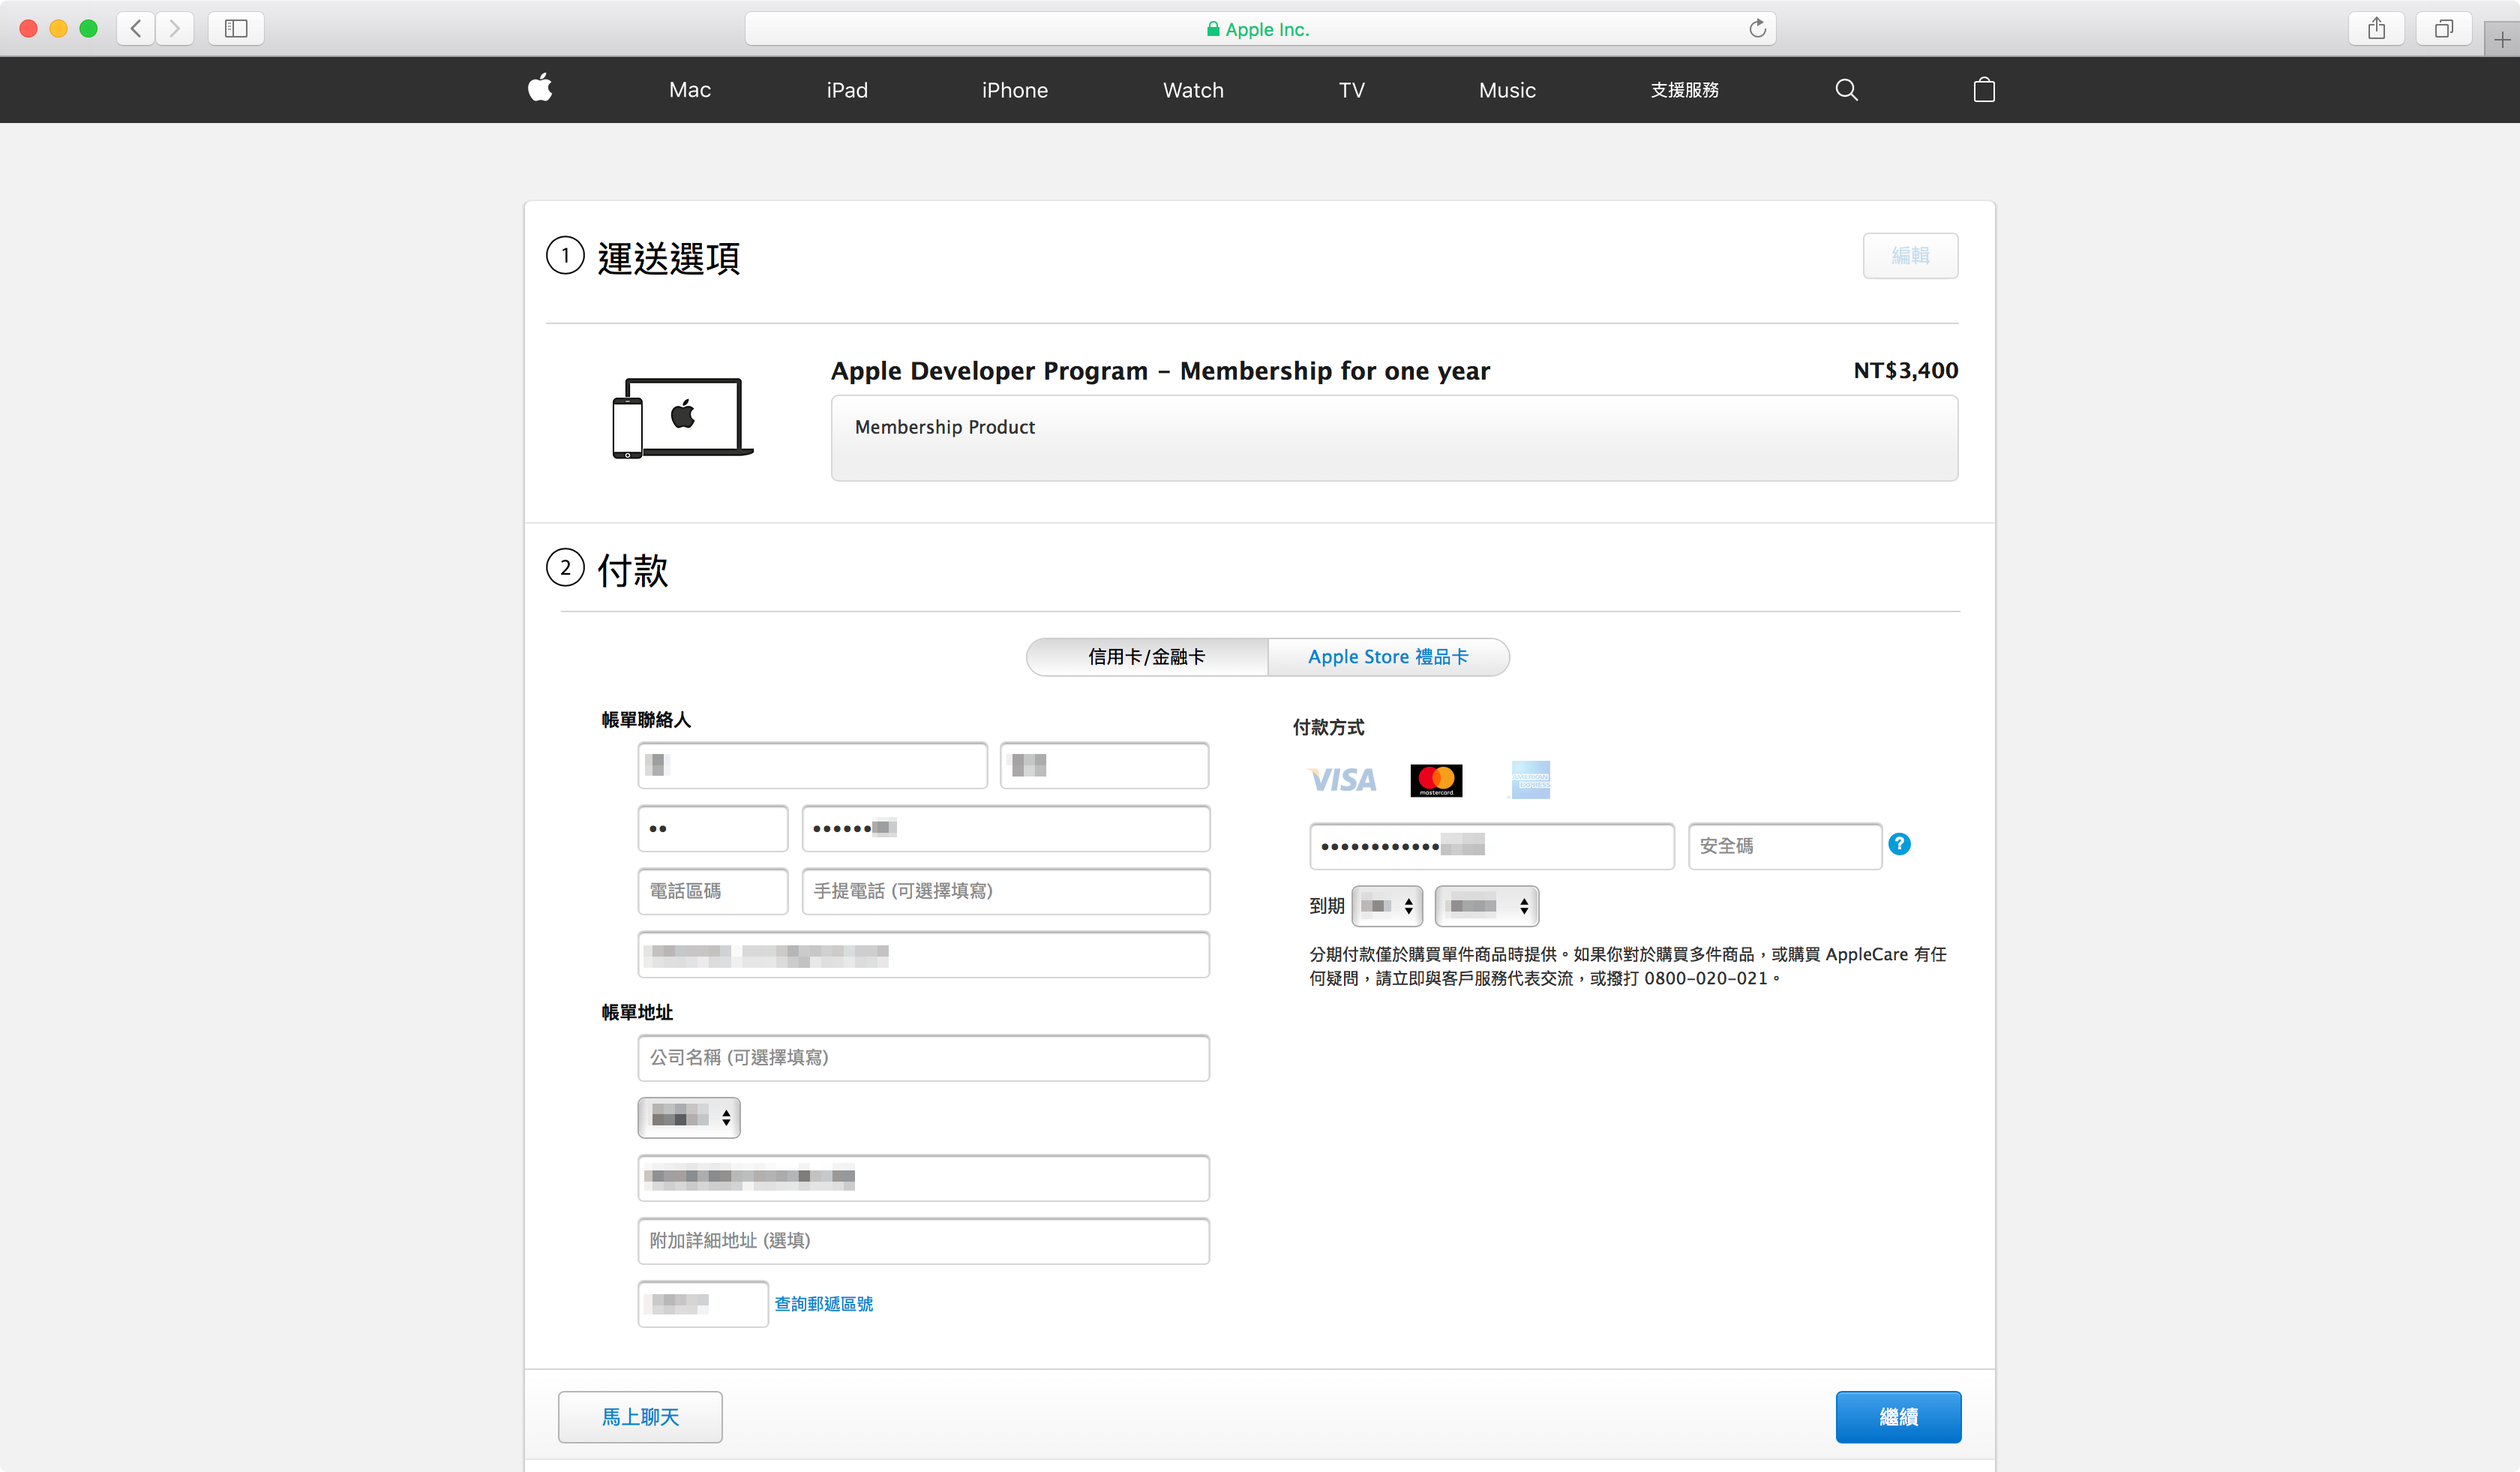 Apple online store - Payment information